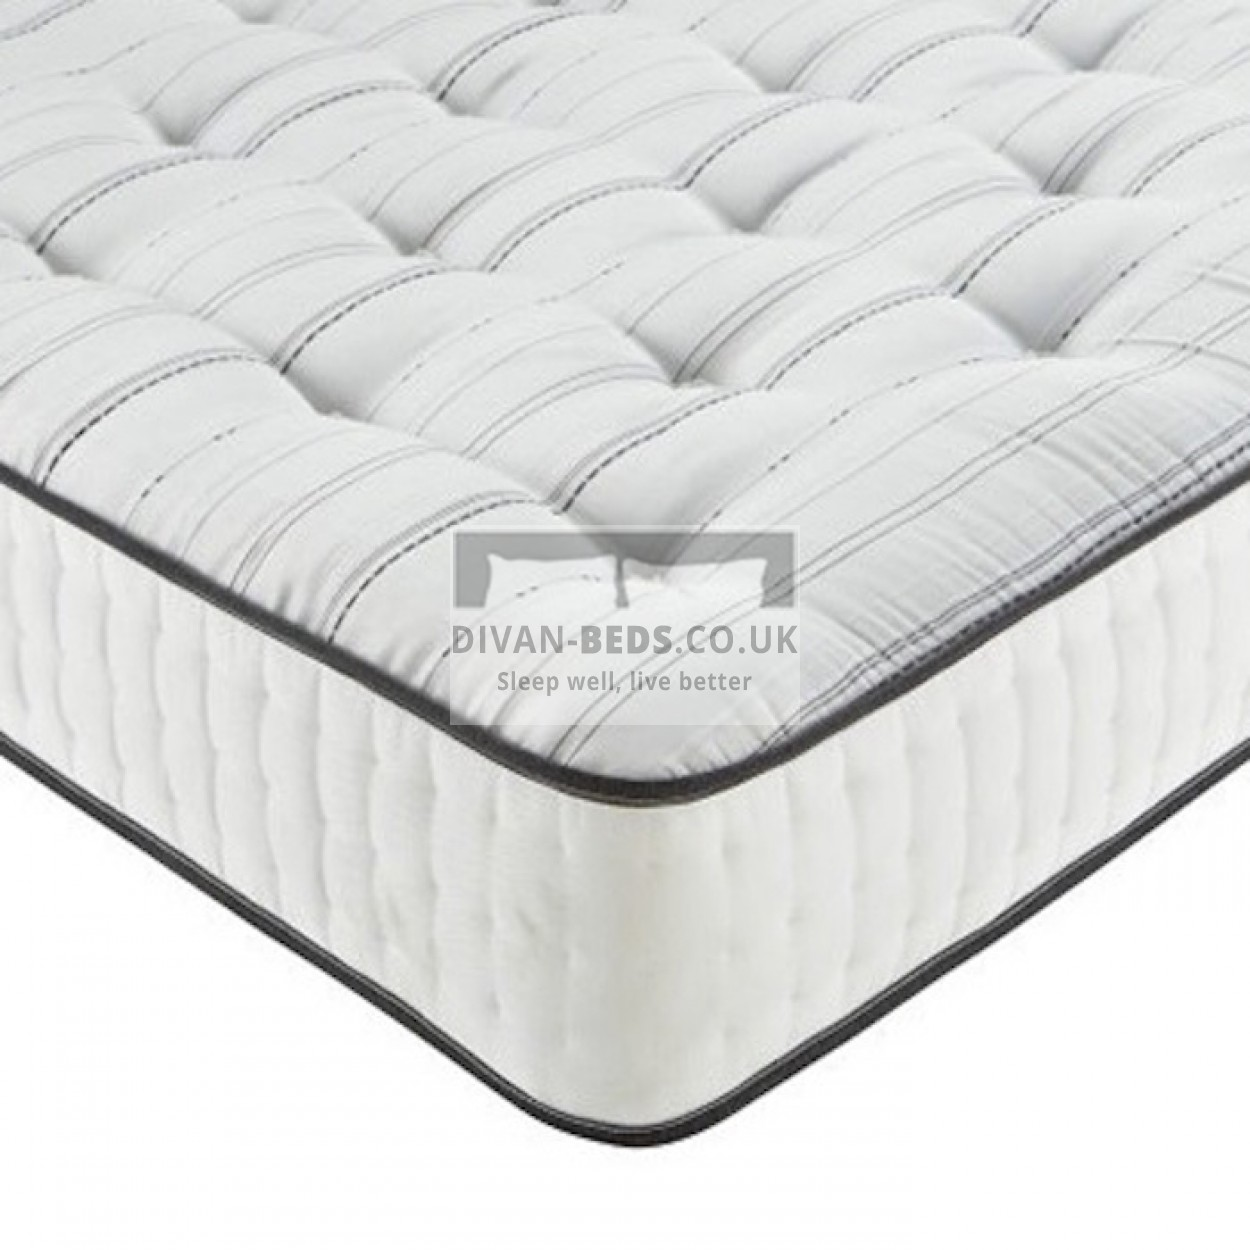 Suplex Pocket 1550 Spring Memory Foam Mattress Guaranteed Cheapest Free Fast Delivery